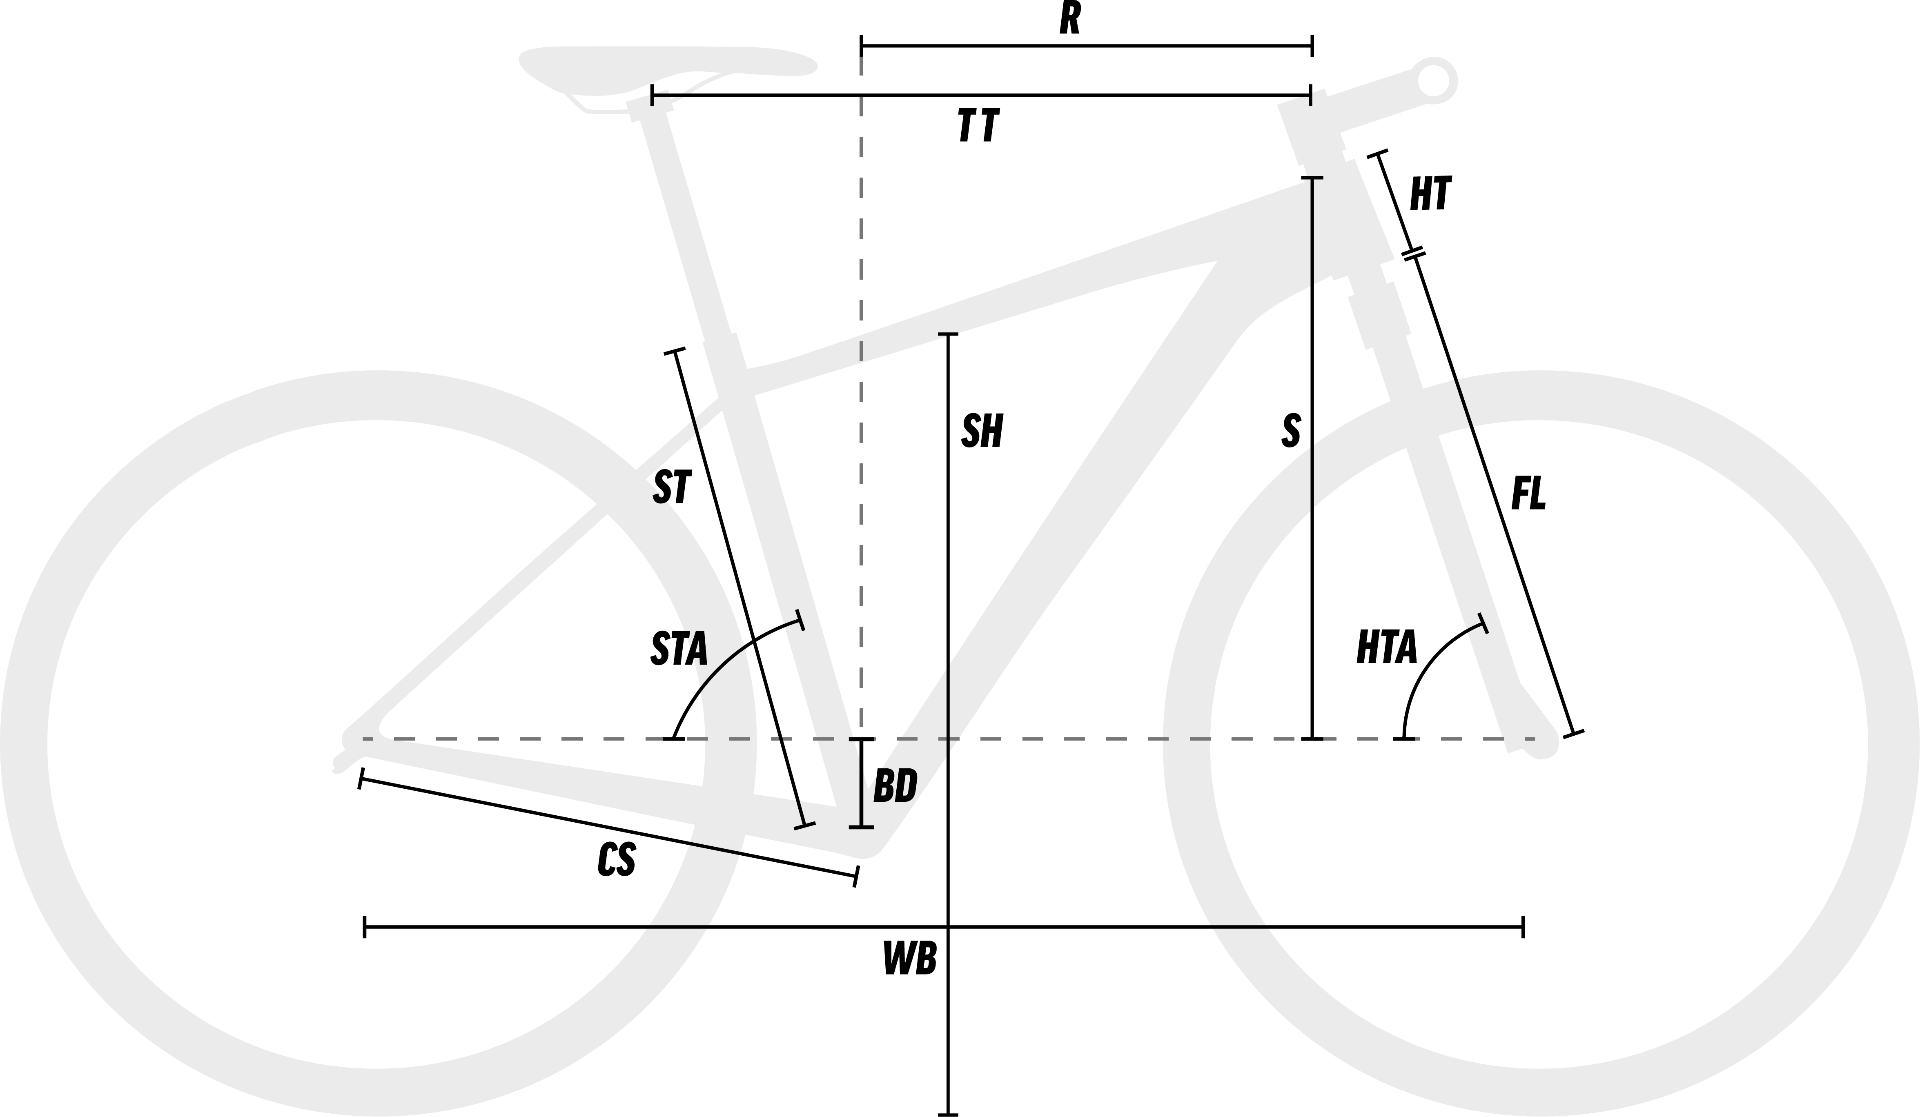 Hardtail Mountain Bike Geometry Diagram